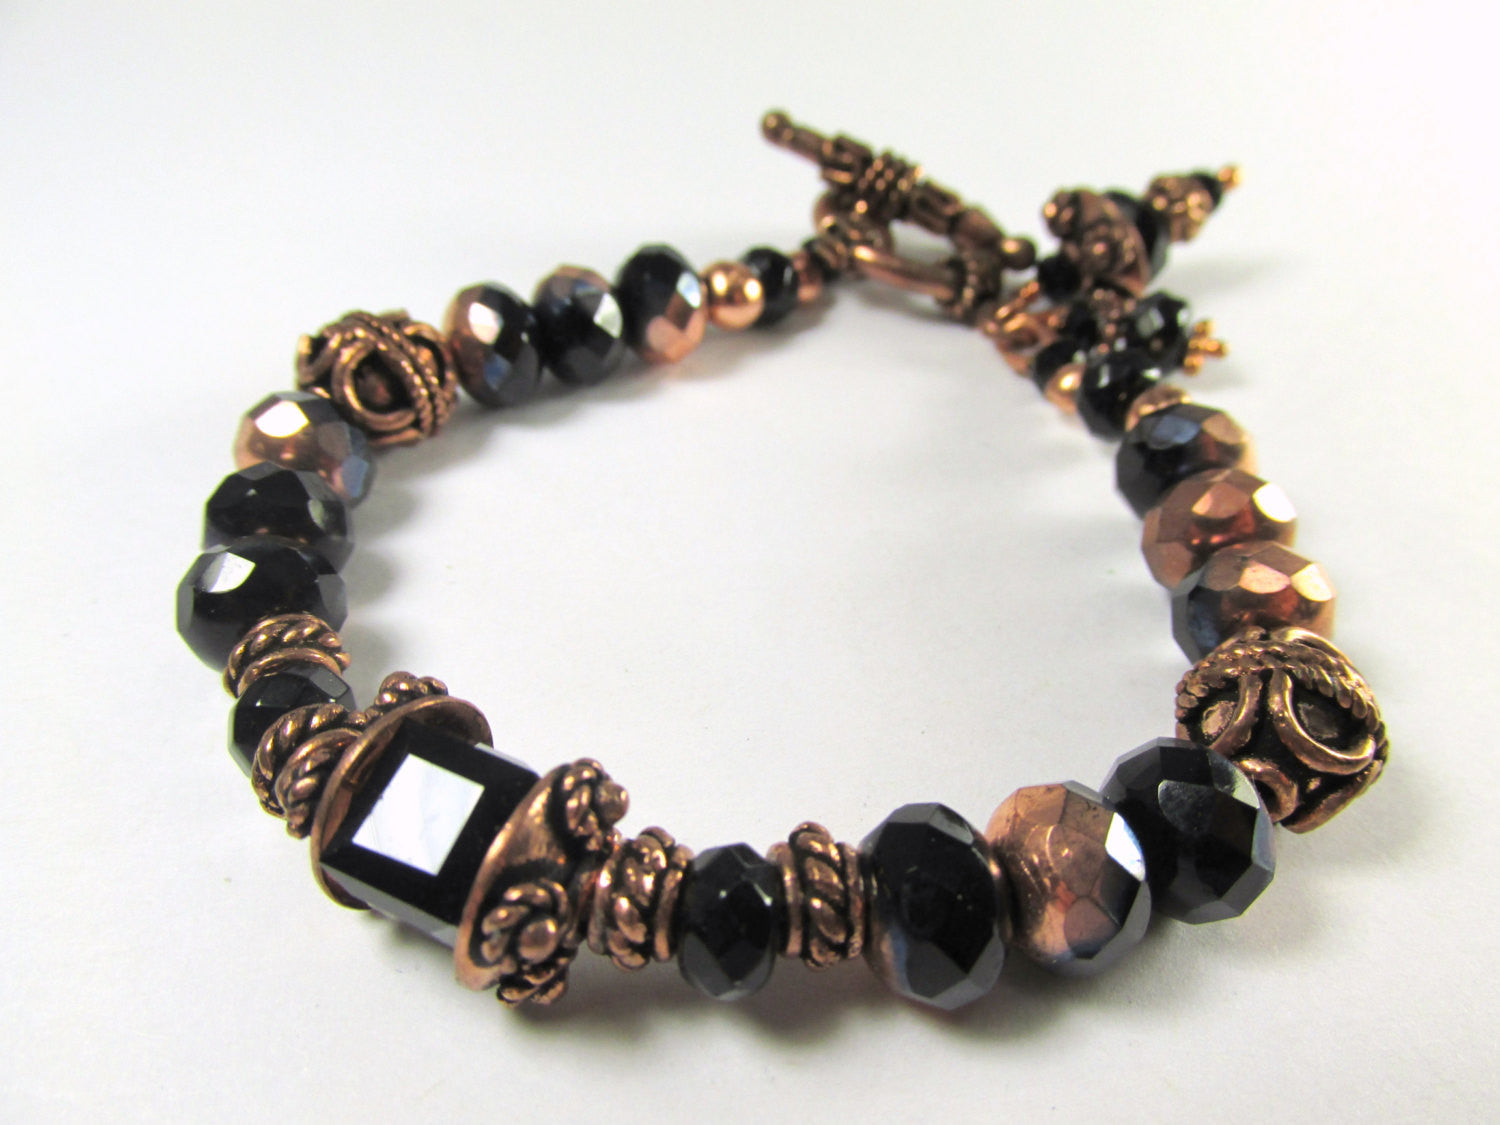 Bracelet in Black and Copper Czech Glass Rondelles Swarovski Cube Center Bead and Bali Style Copper Beads and Toggle Clasp and Charms - Odyssey Creations